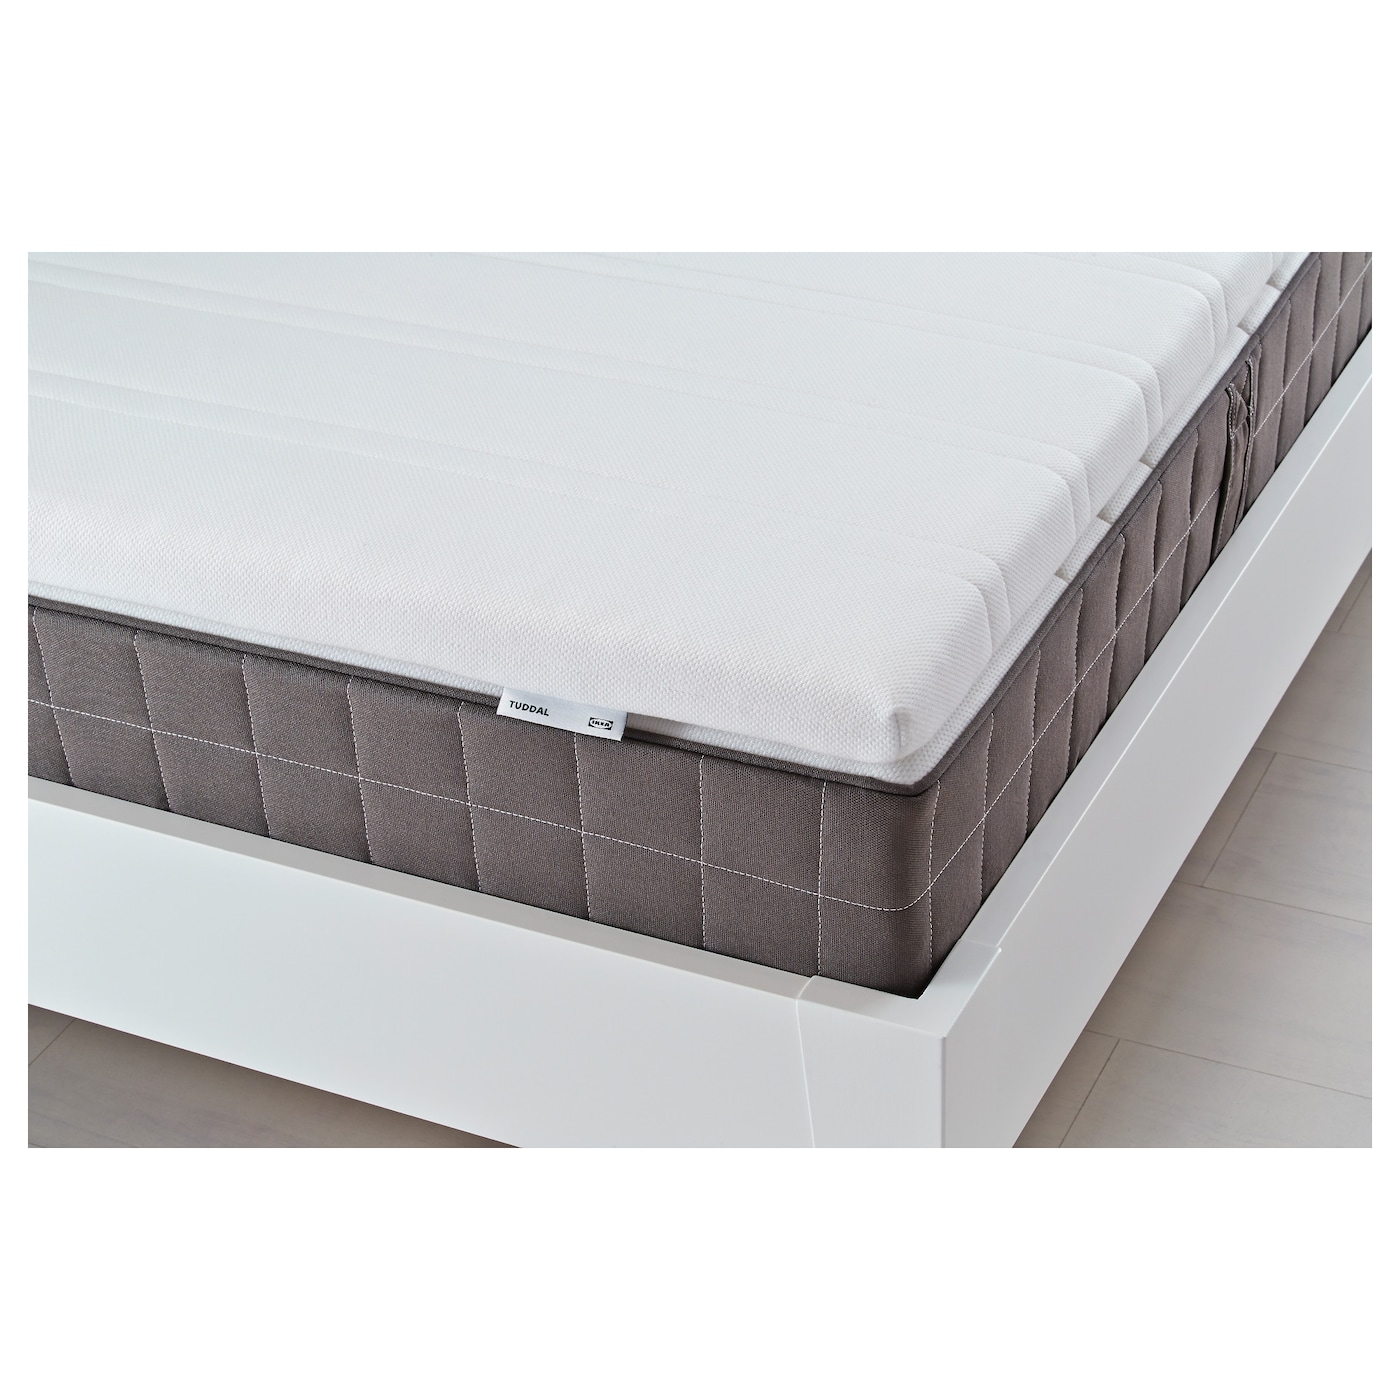 tuddal surmatelas blanc 140 x 200 cm ikea. Black Bedroom Furniture Sets. Home Design Ideas